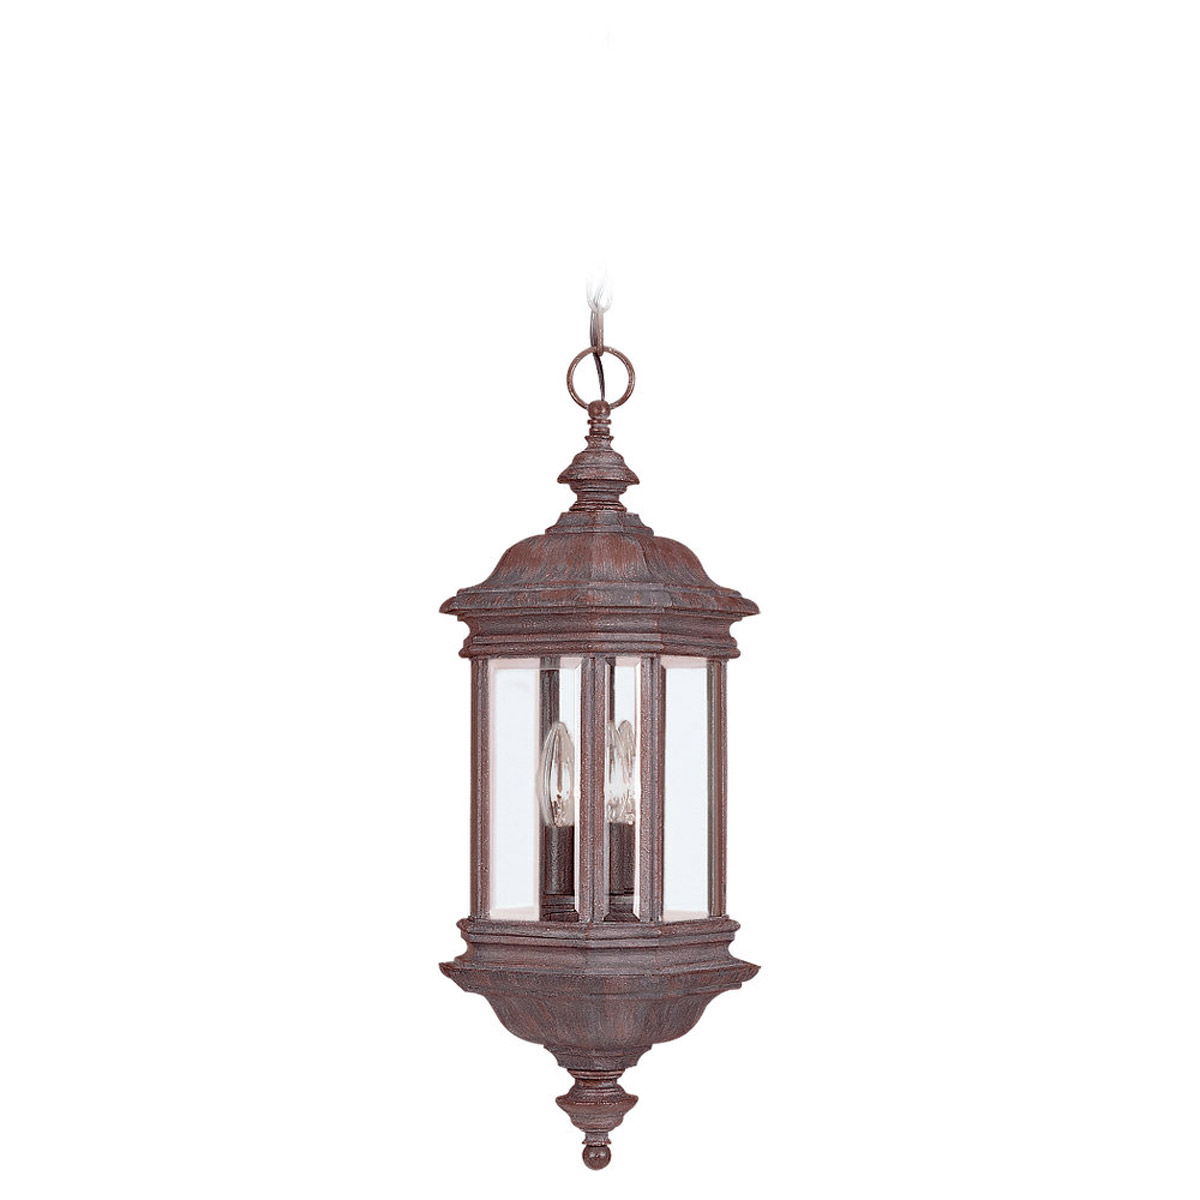 Sea Gull Lighting Hill Gate 3 Light Outdoor Pendant in Textured Rust Patina 6637-08